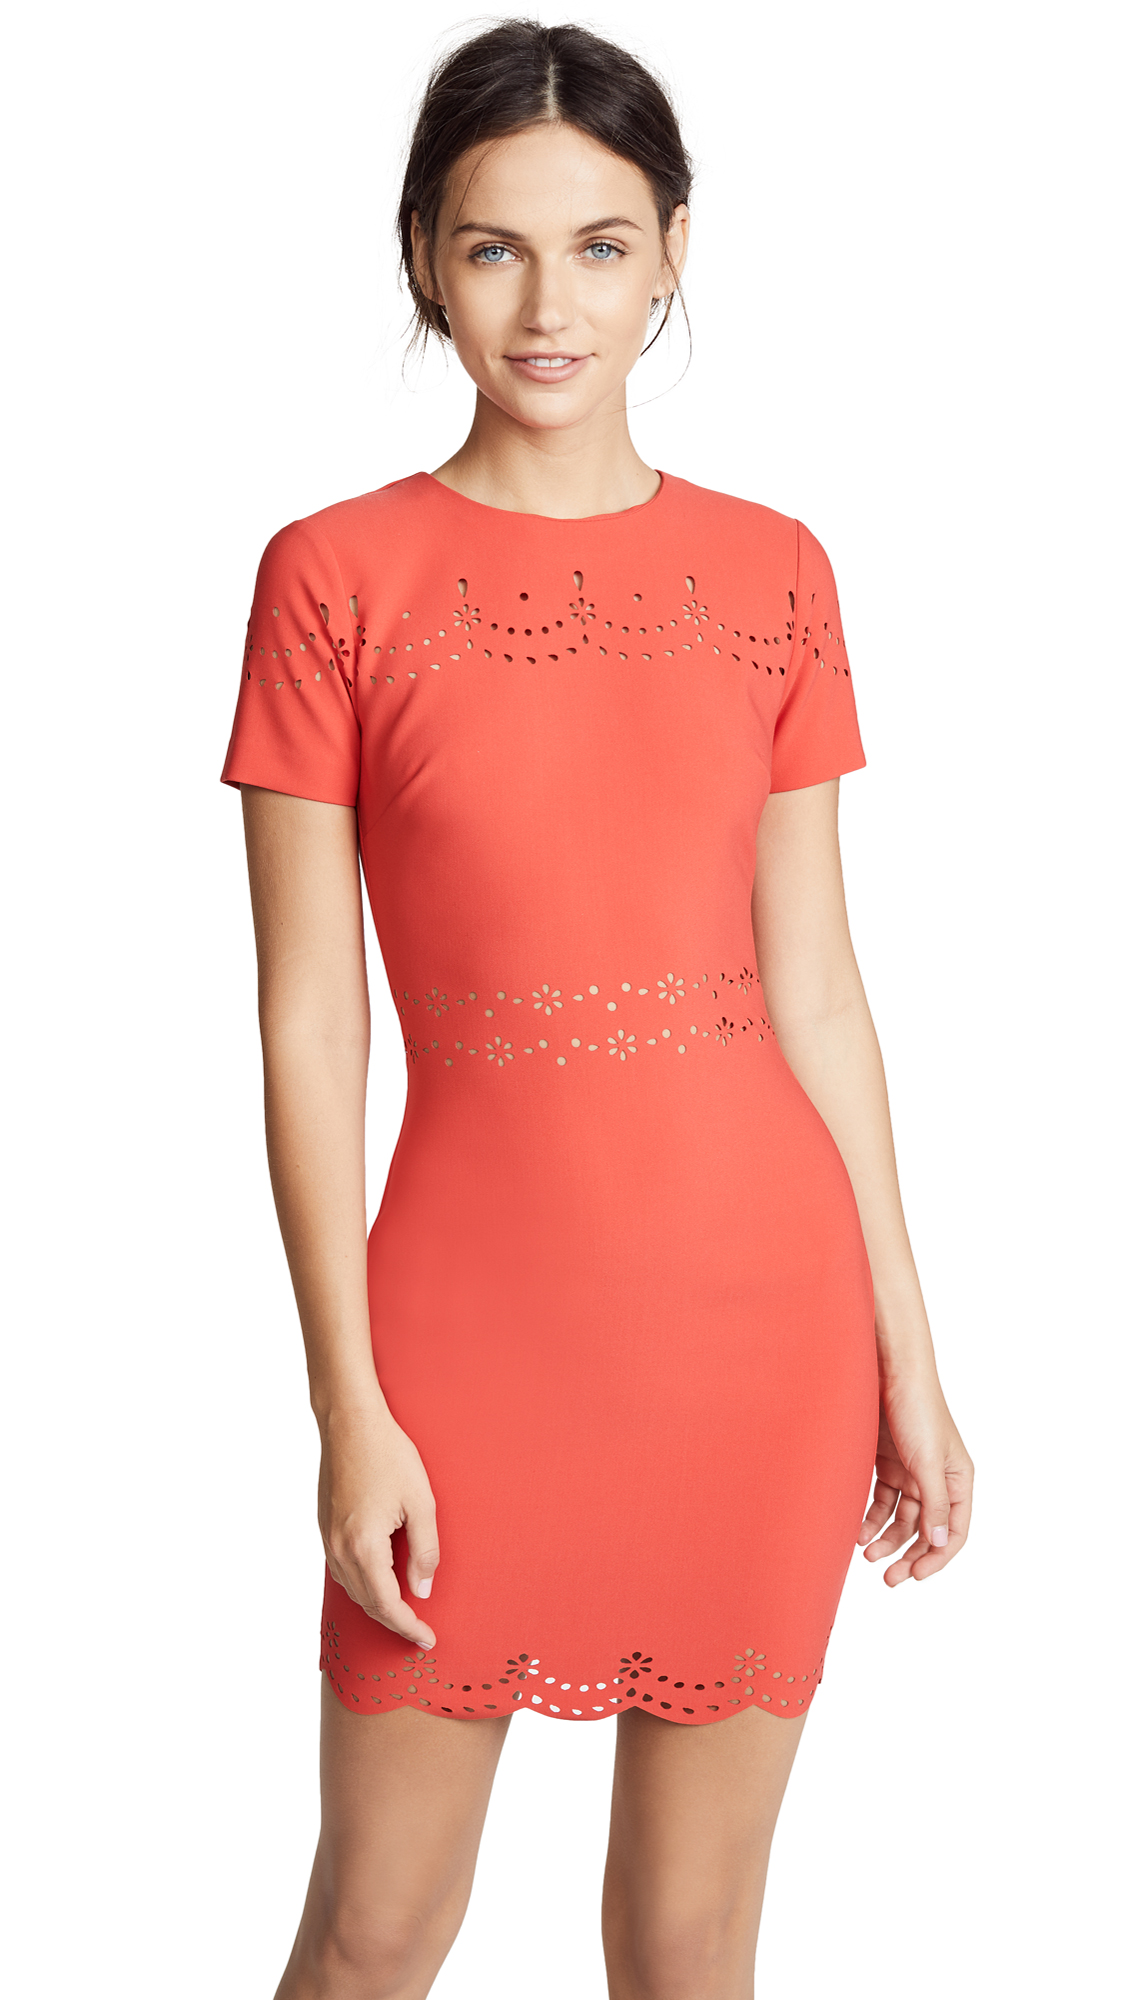 EYELET MANHATTAN DRESS